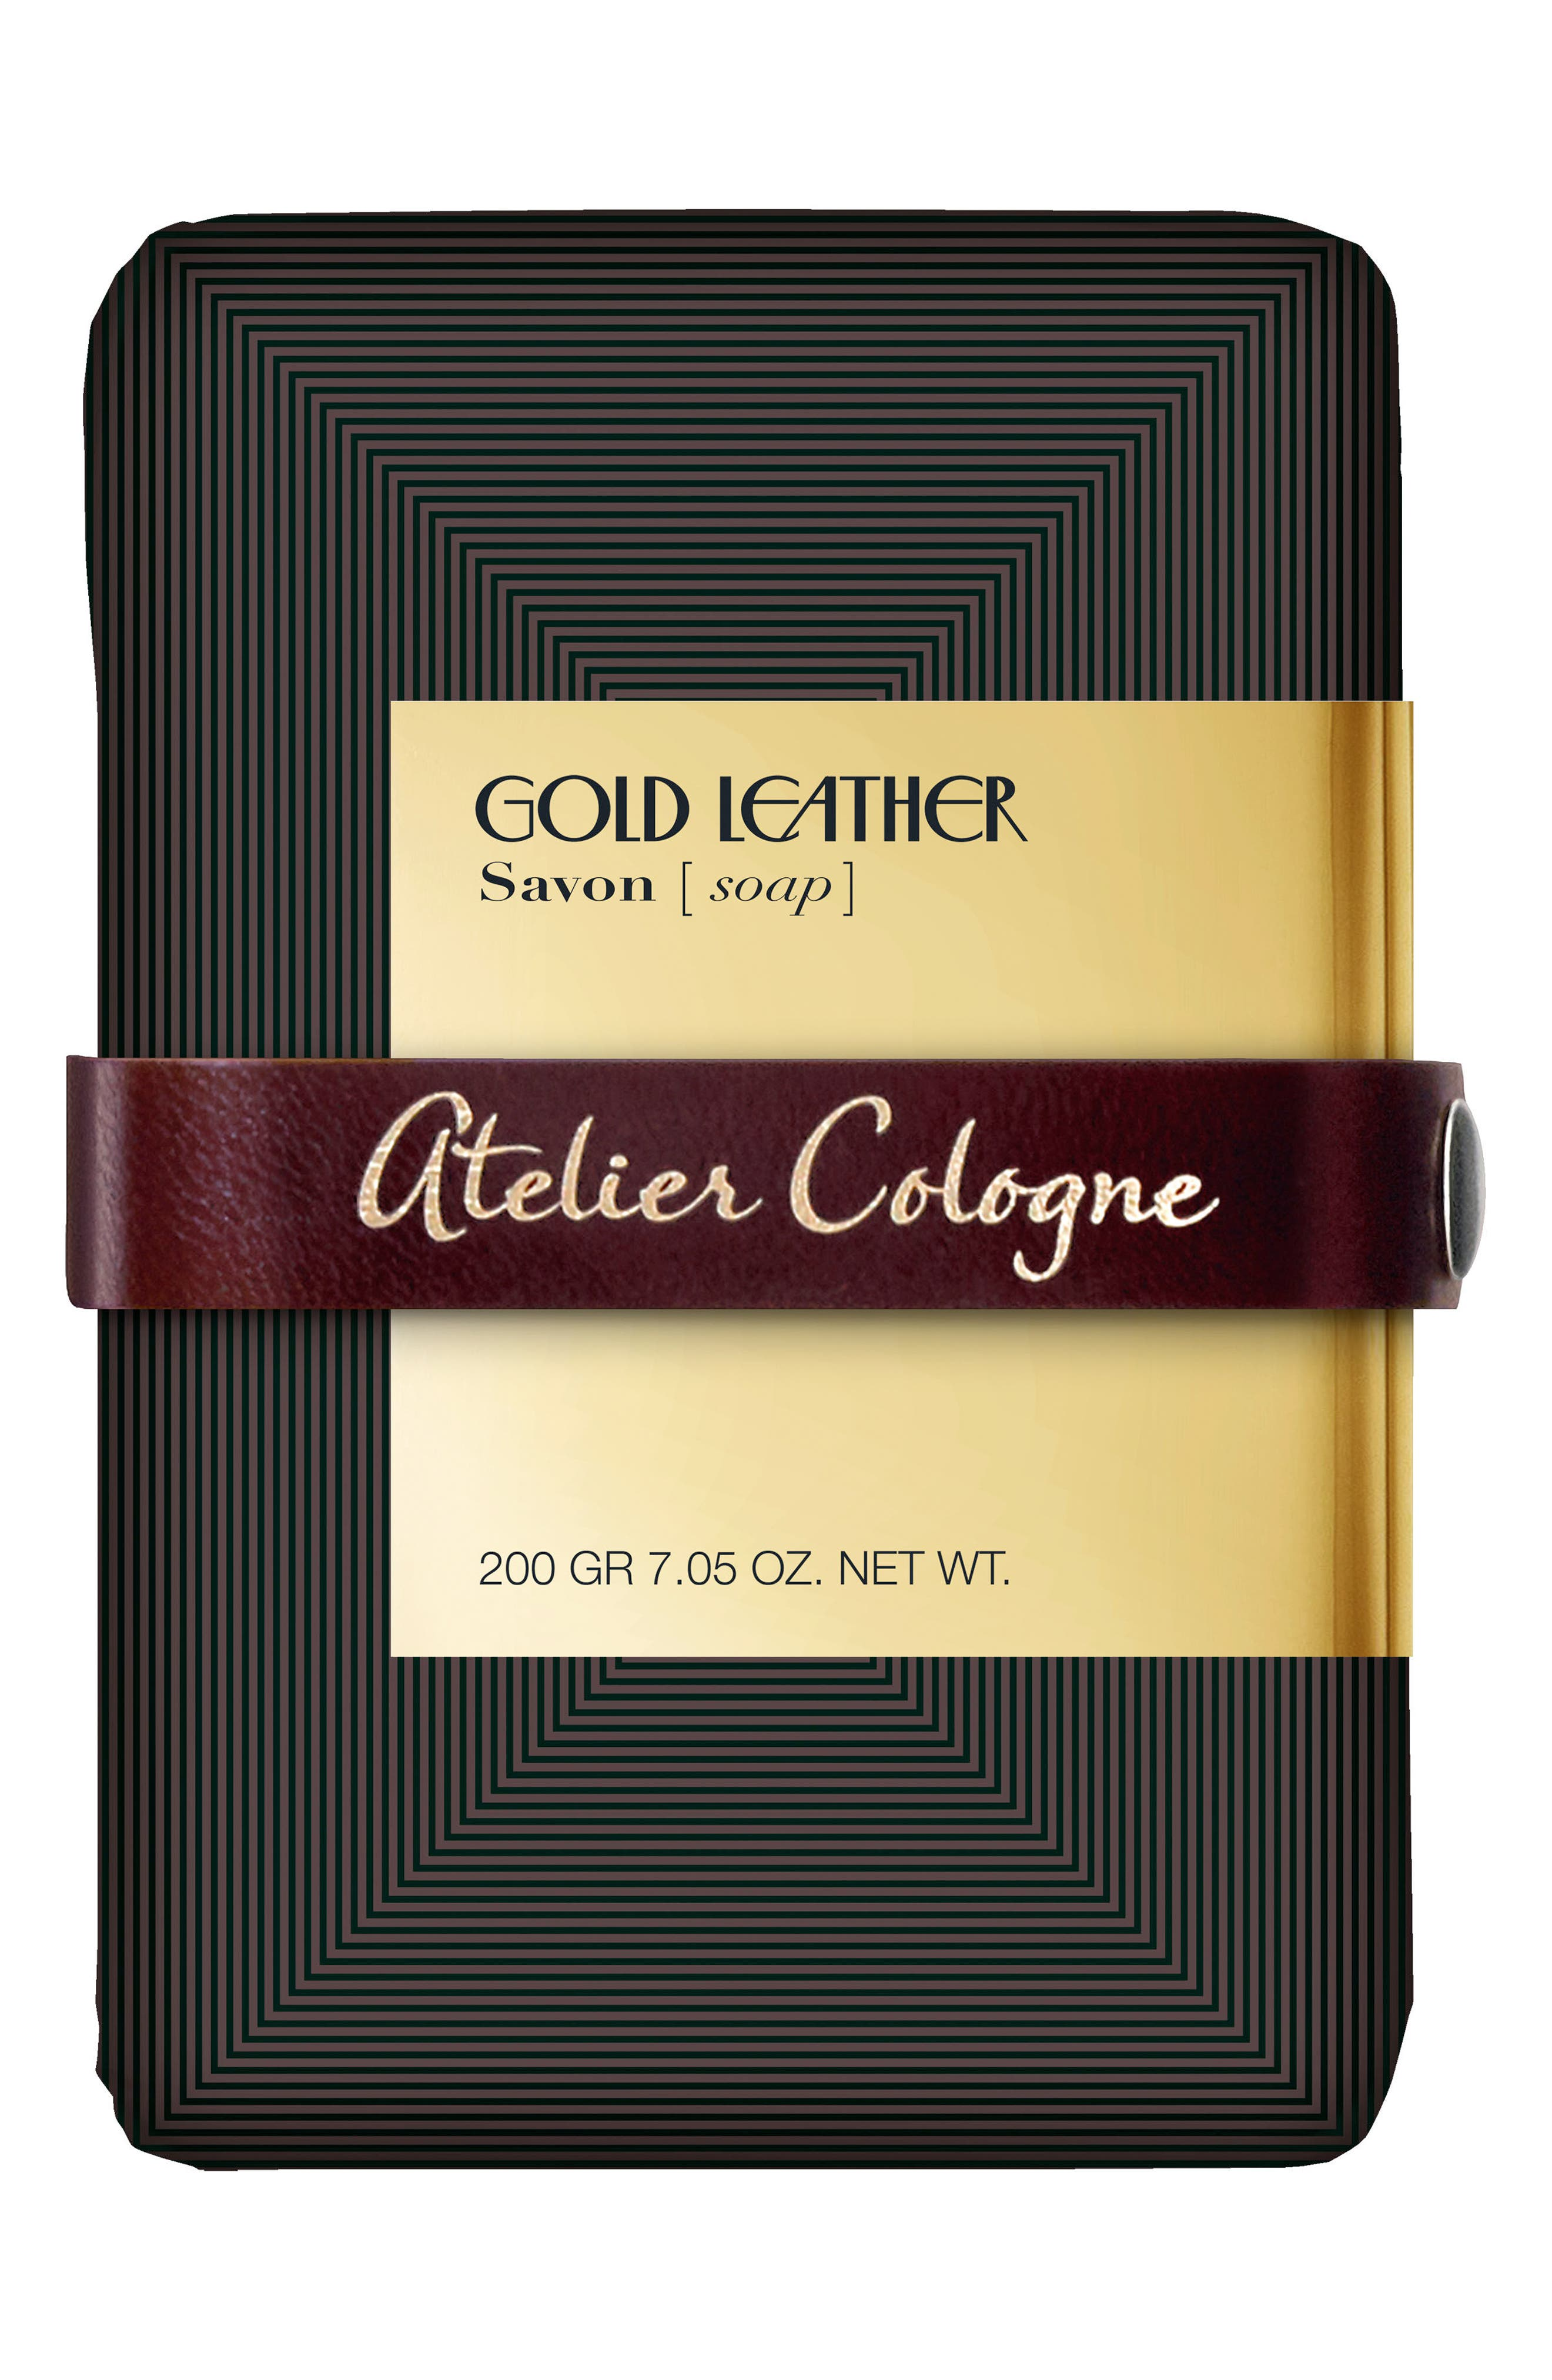 Atelier Cologne Gold Leather Soap